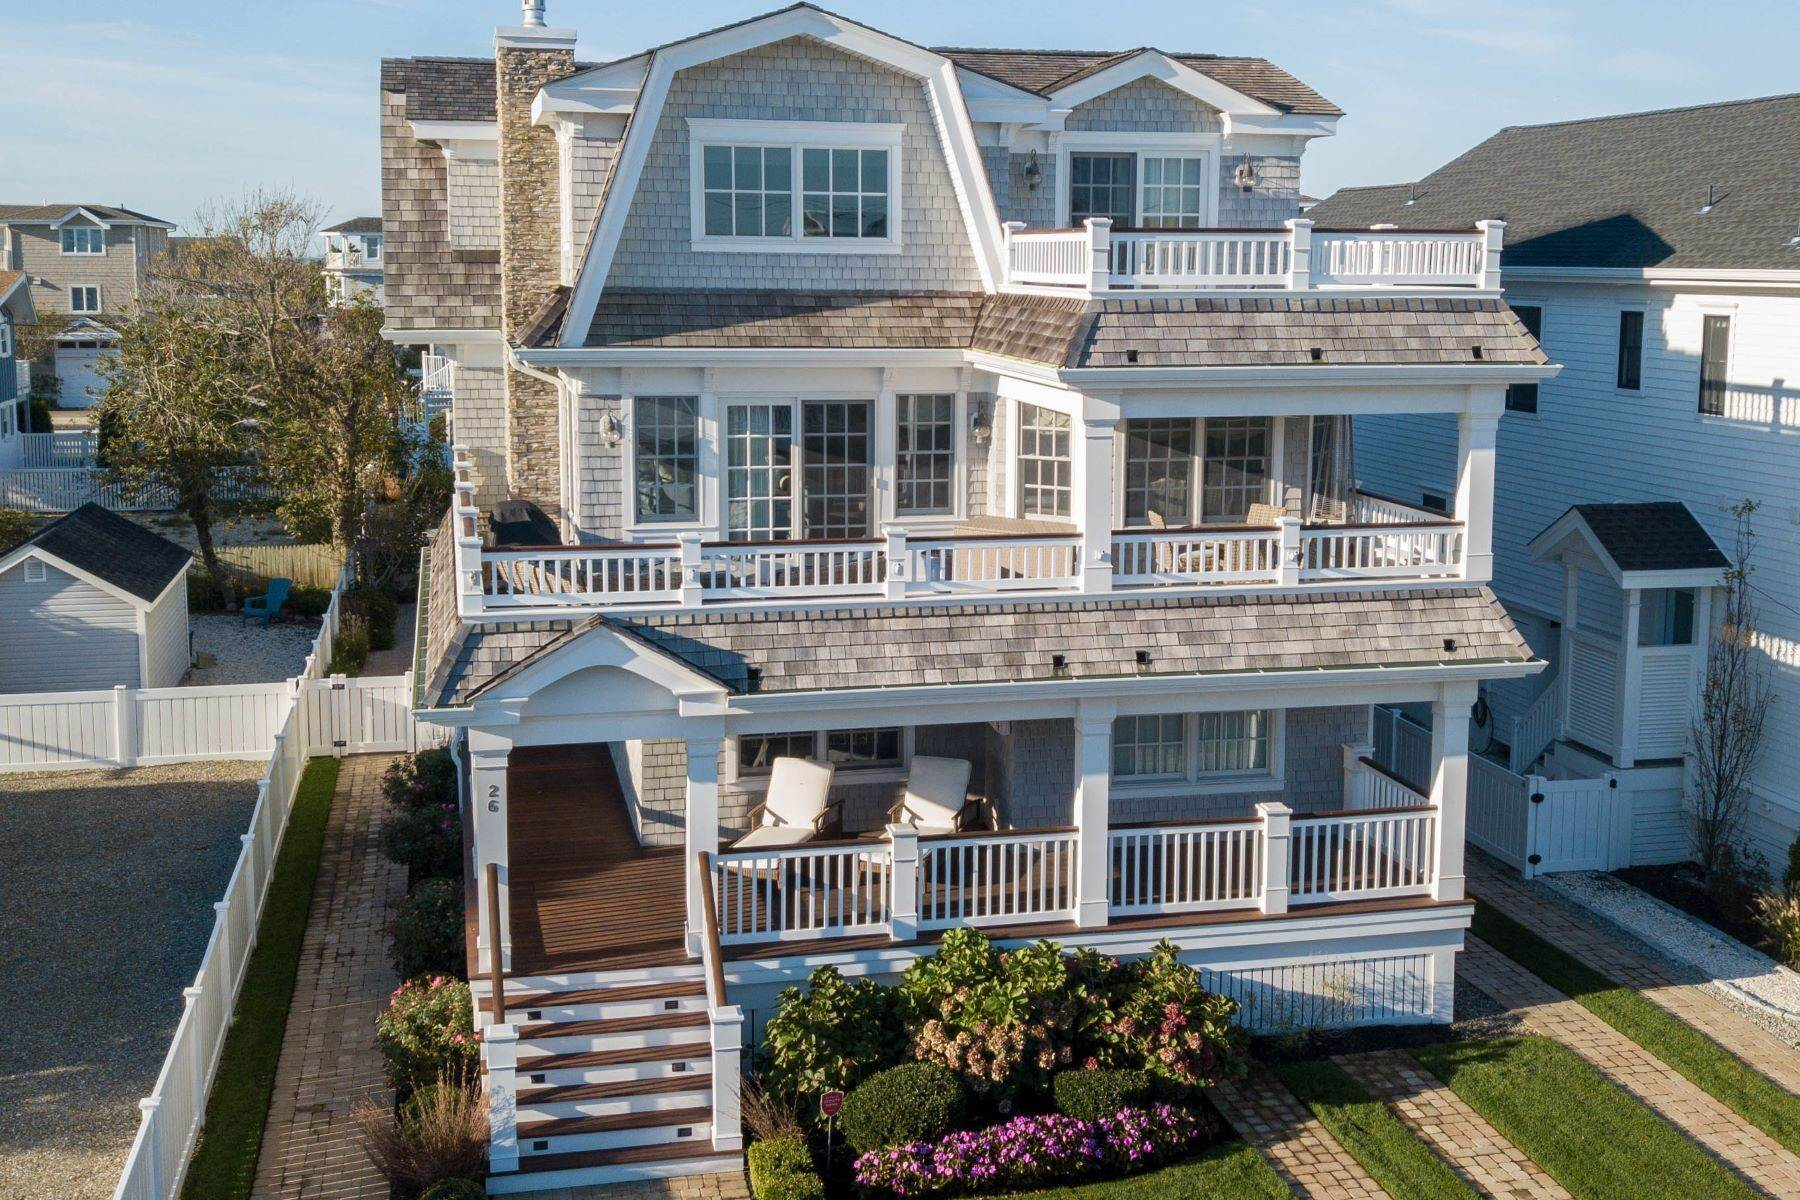 Single Family Homes for Sale at Stunning Beach Retreat 26 W 31st Street, Avalon, New Jersey 08202 United States